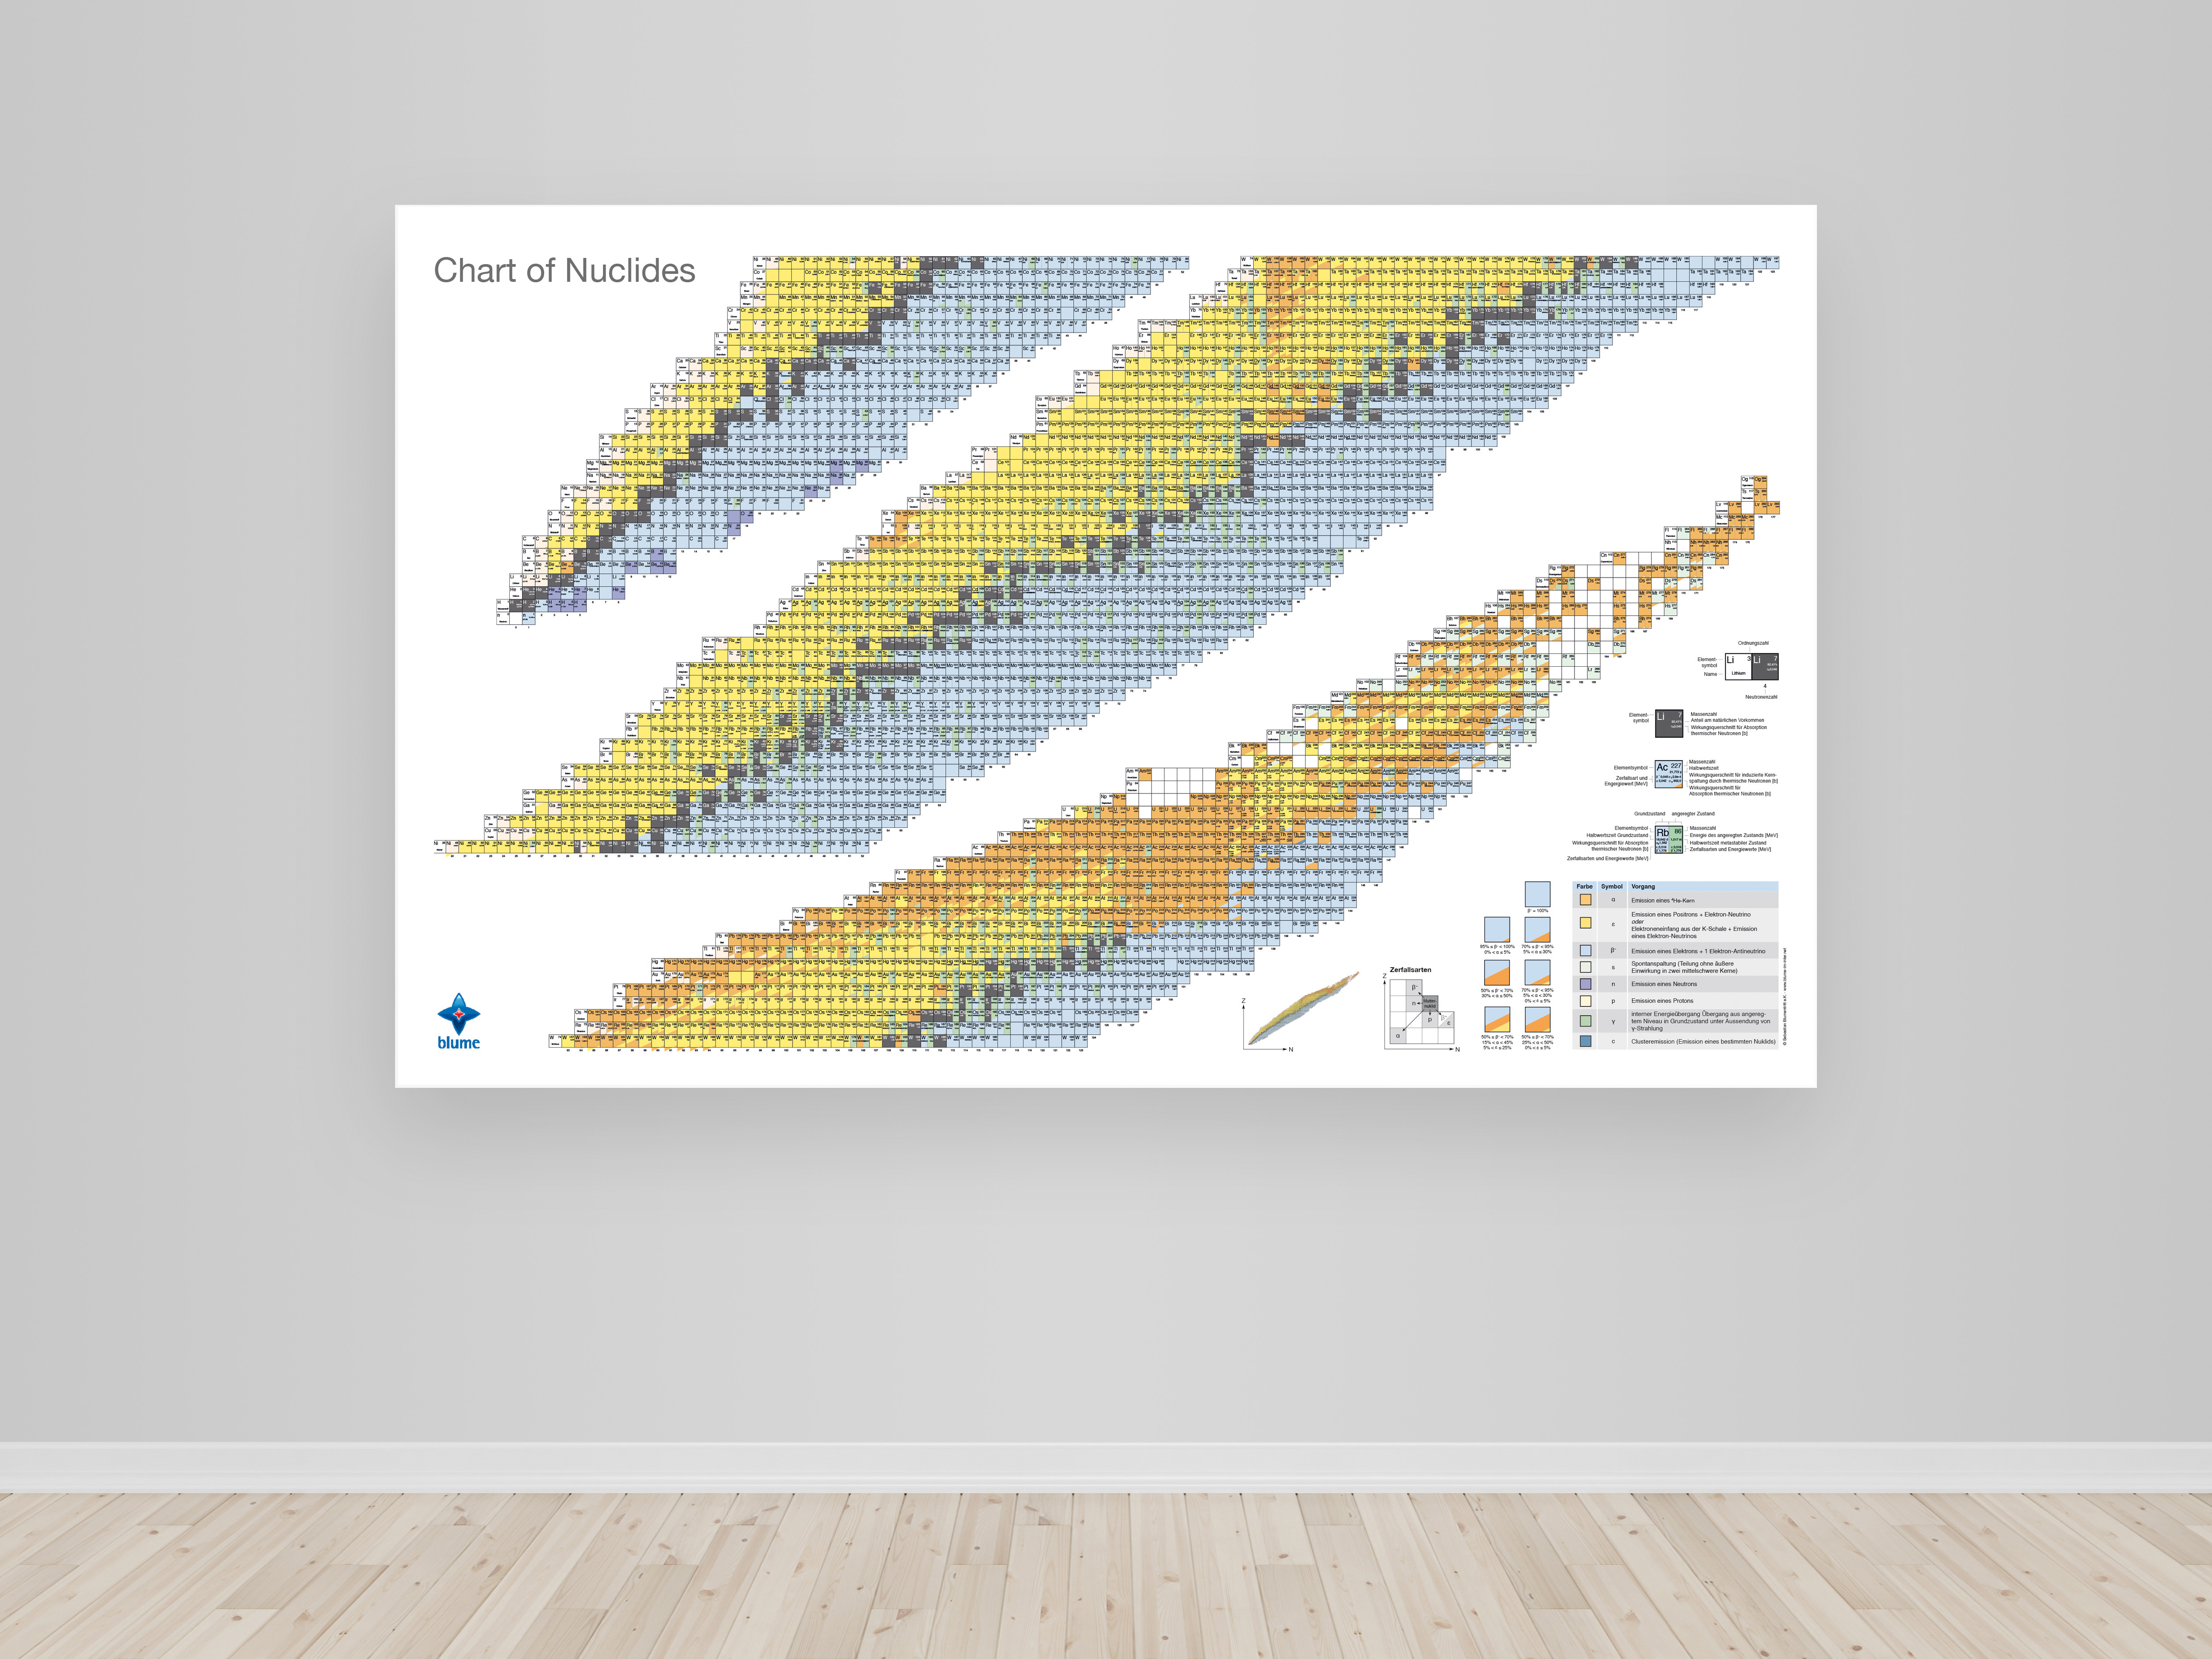 Chart of Nuclides - Poster - full version